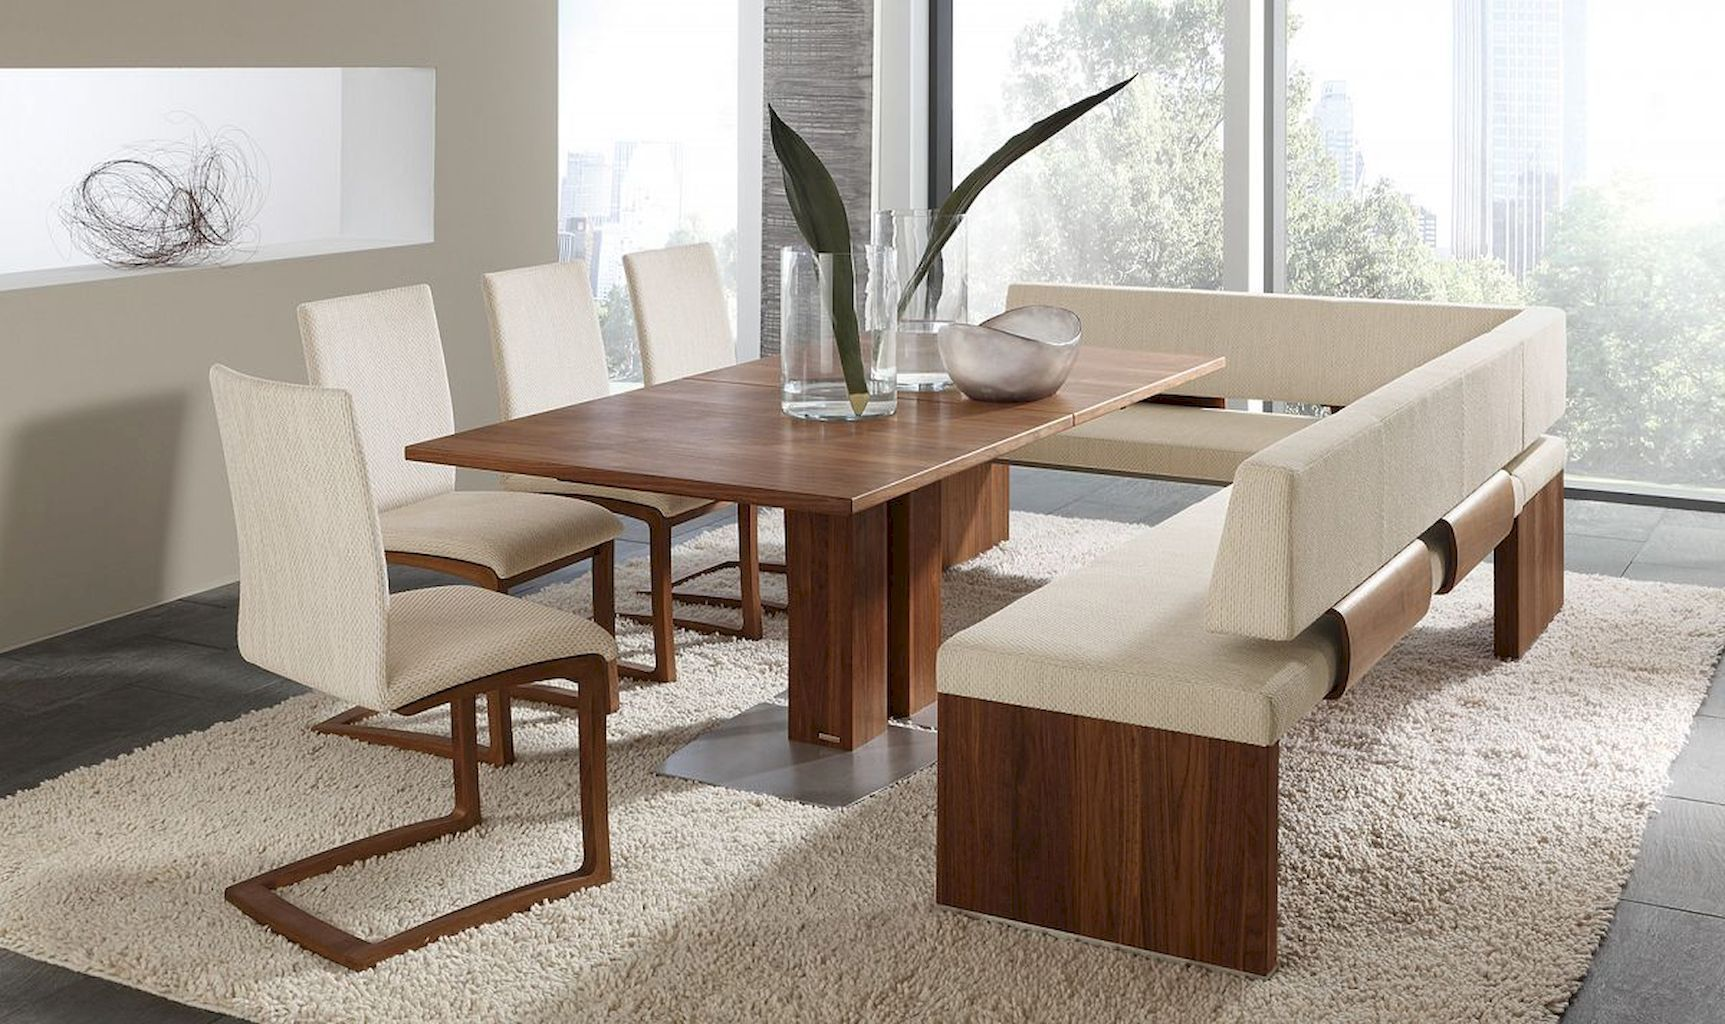 2 Colours For A Luxury Dining Room Insplosion Blog Contemporary Dining Room Sets Apartment Dining Room Apartment Dining